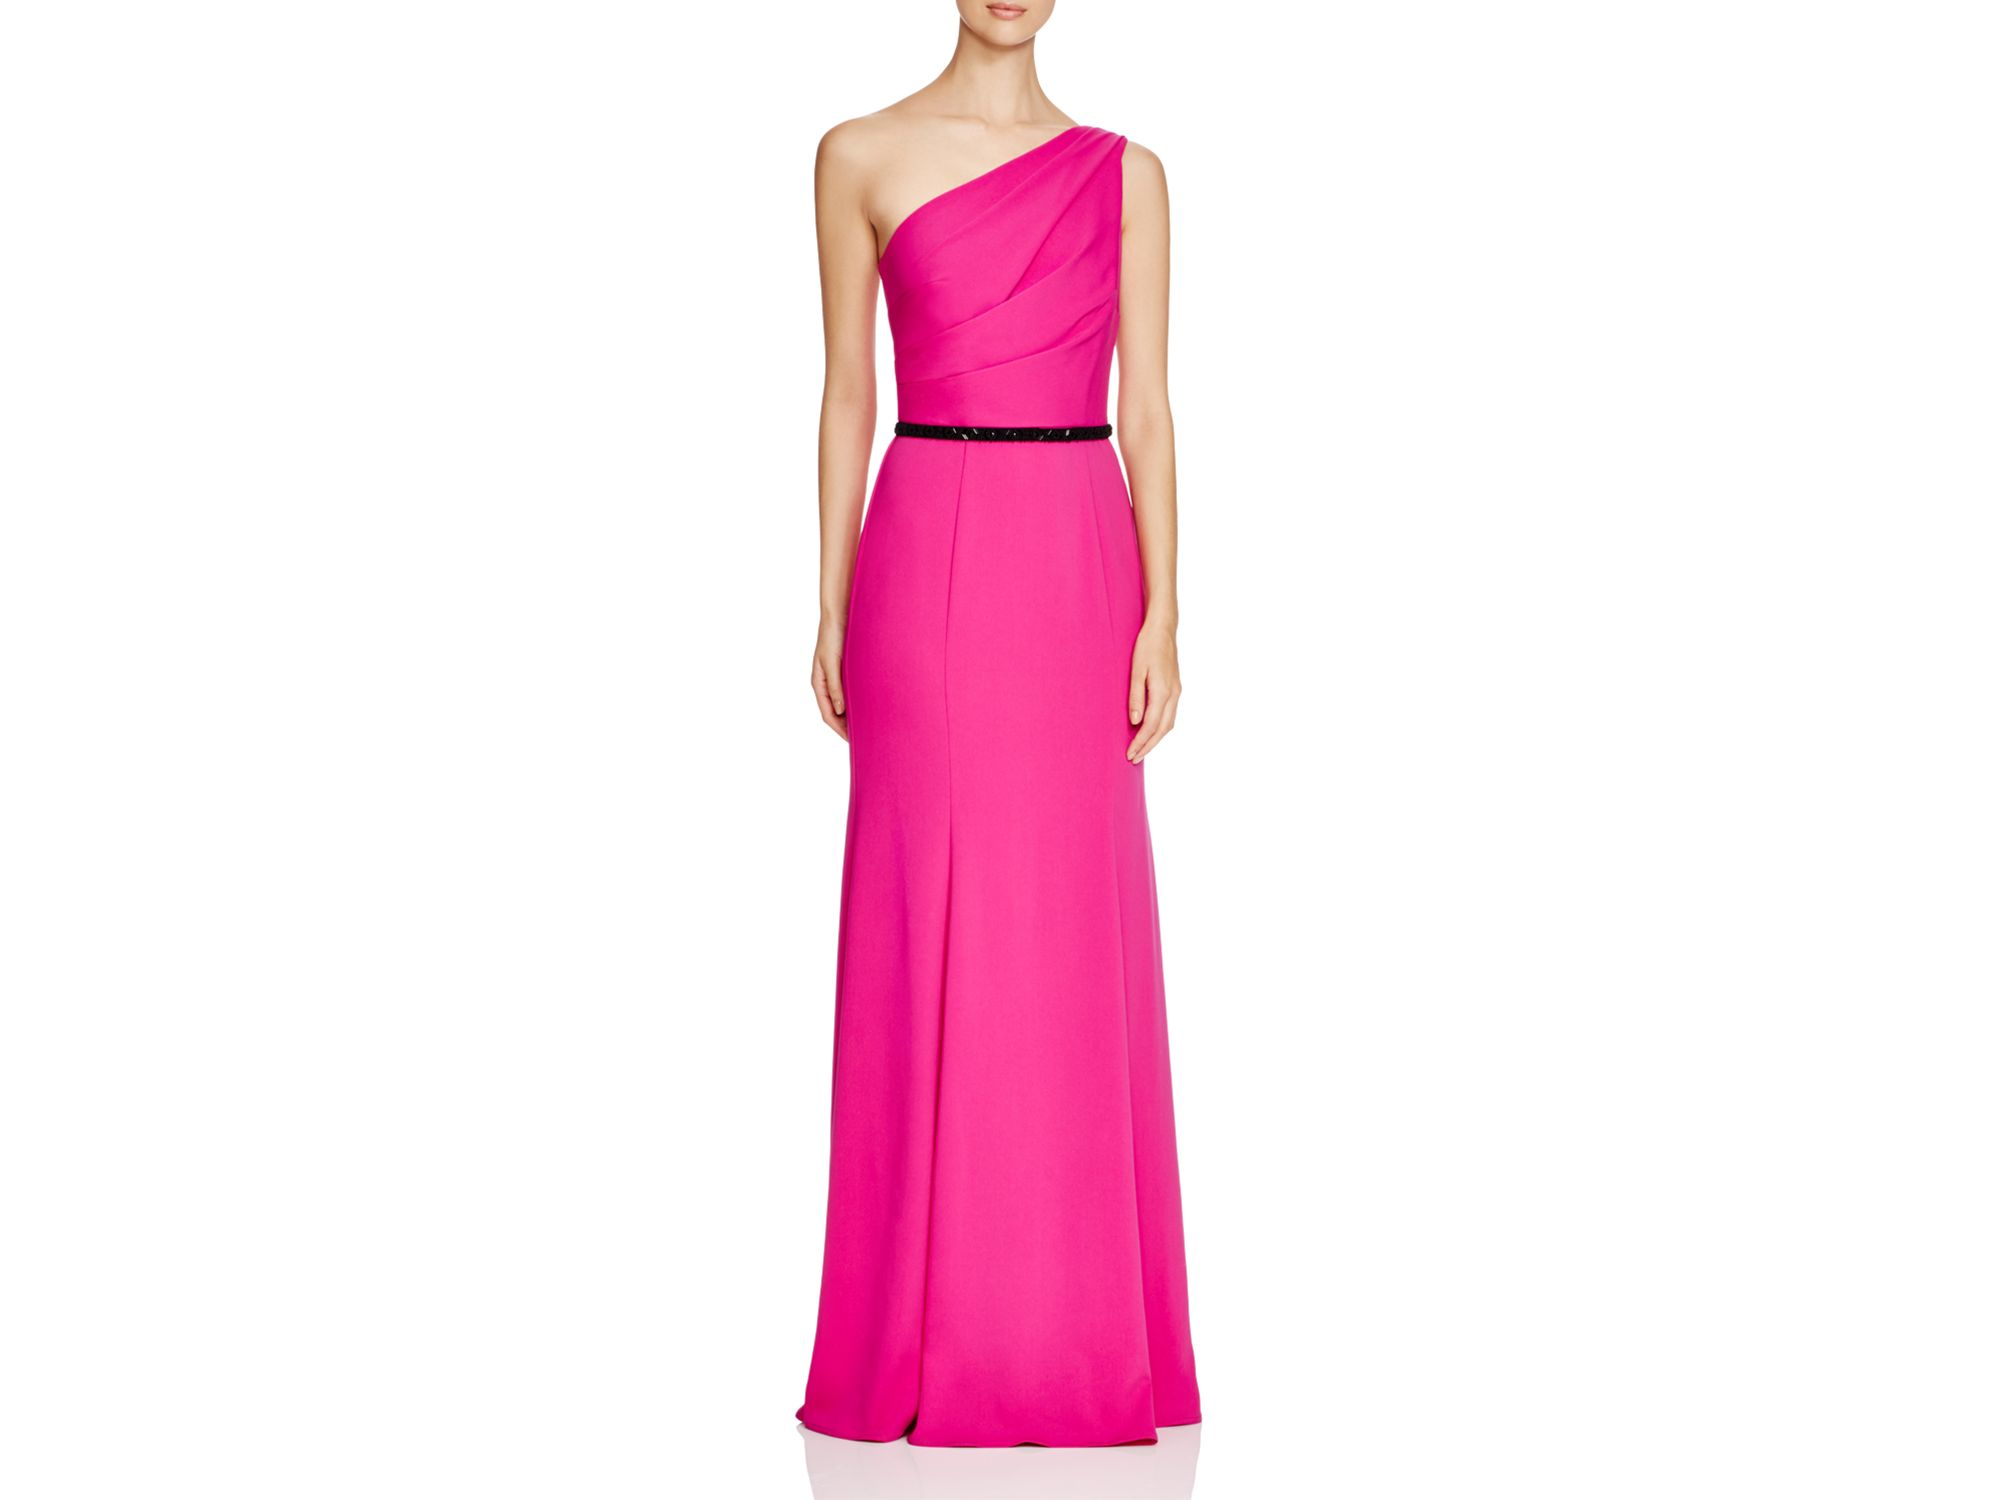 Lyst - Carmen Marc Valvo Infusion One-shoulder Belted Gown in Pink